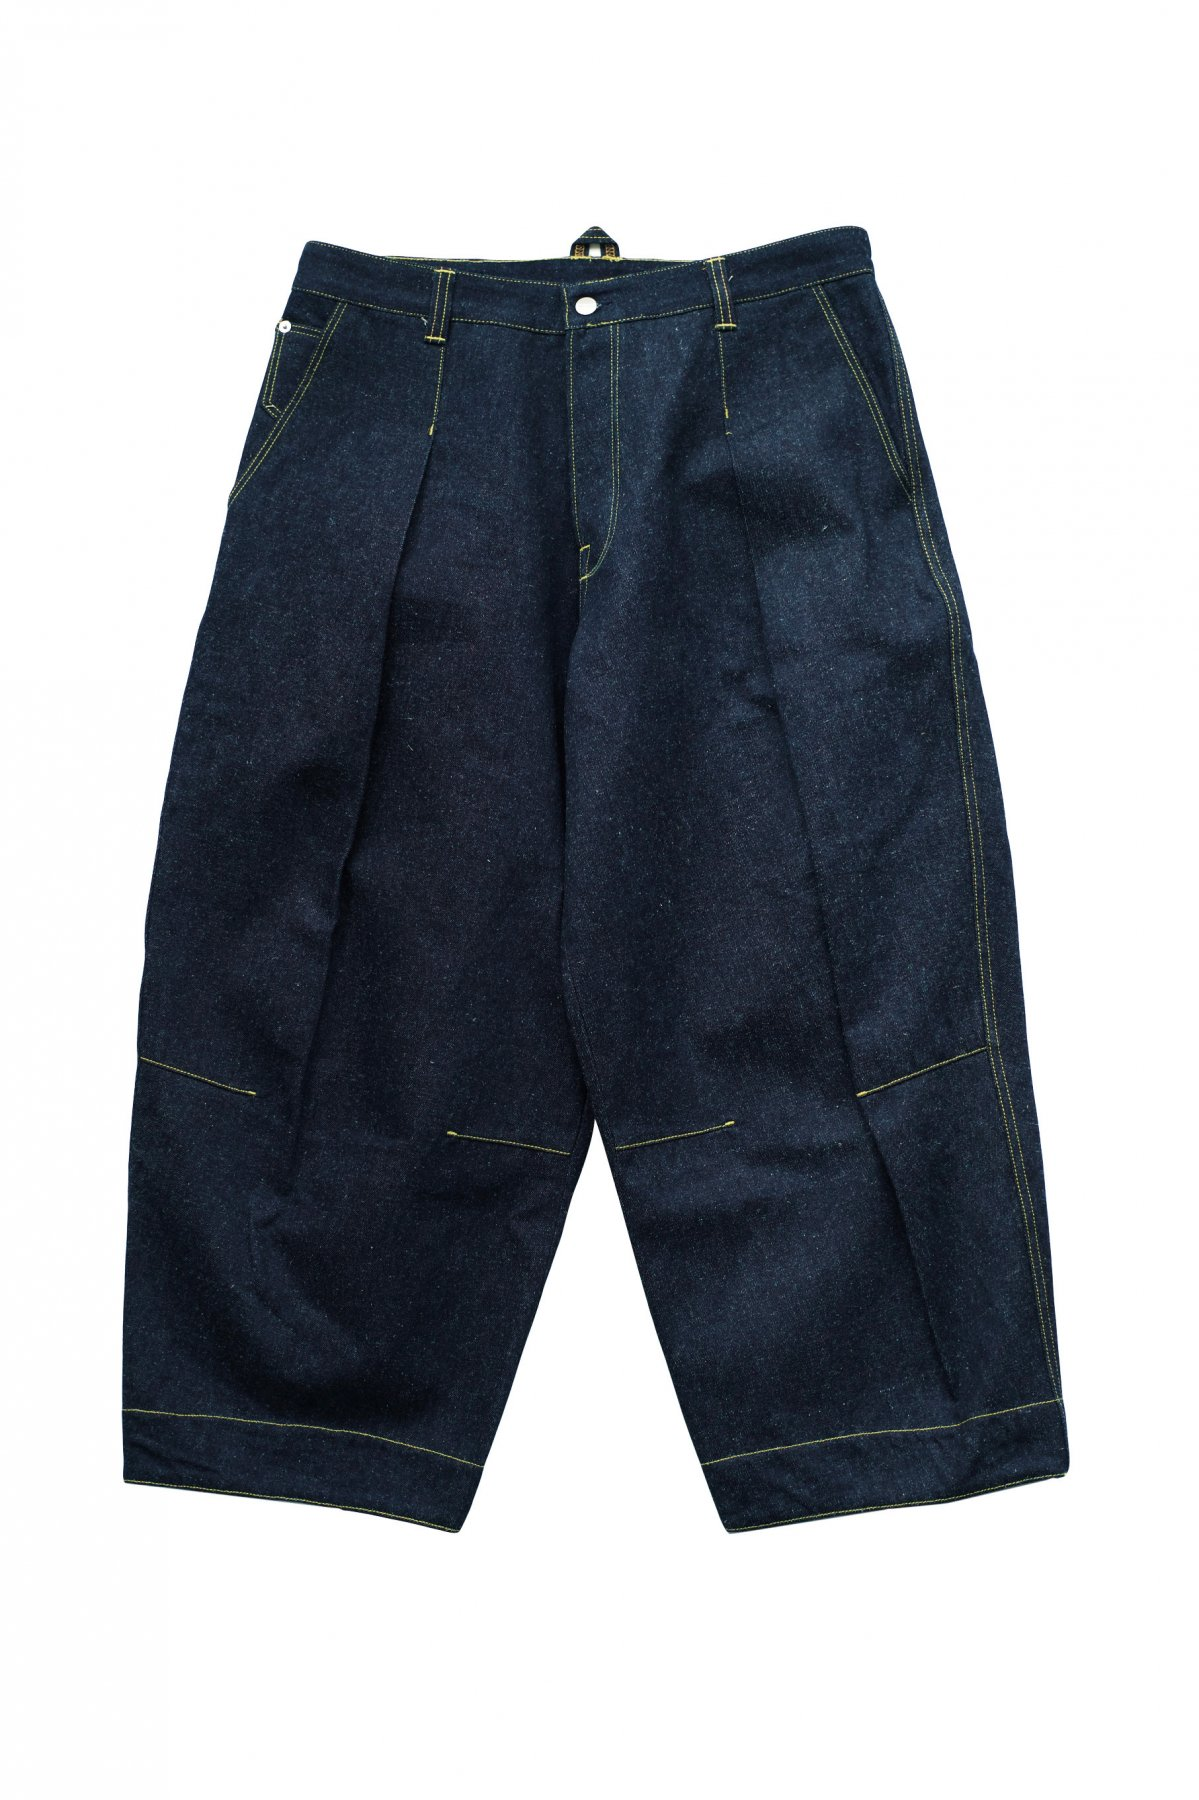 toogood - THE TINKER JEAN - BRITISH DENIM TROUSER